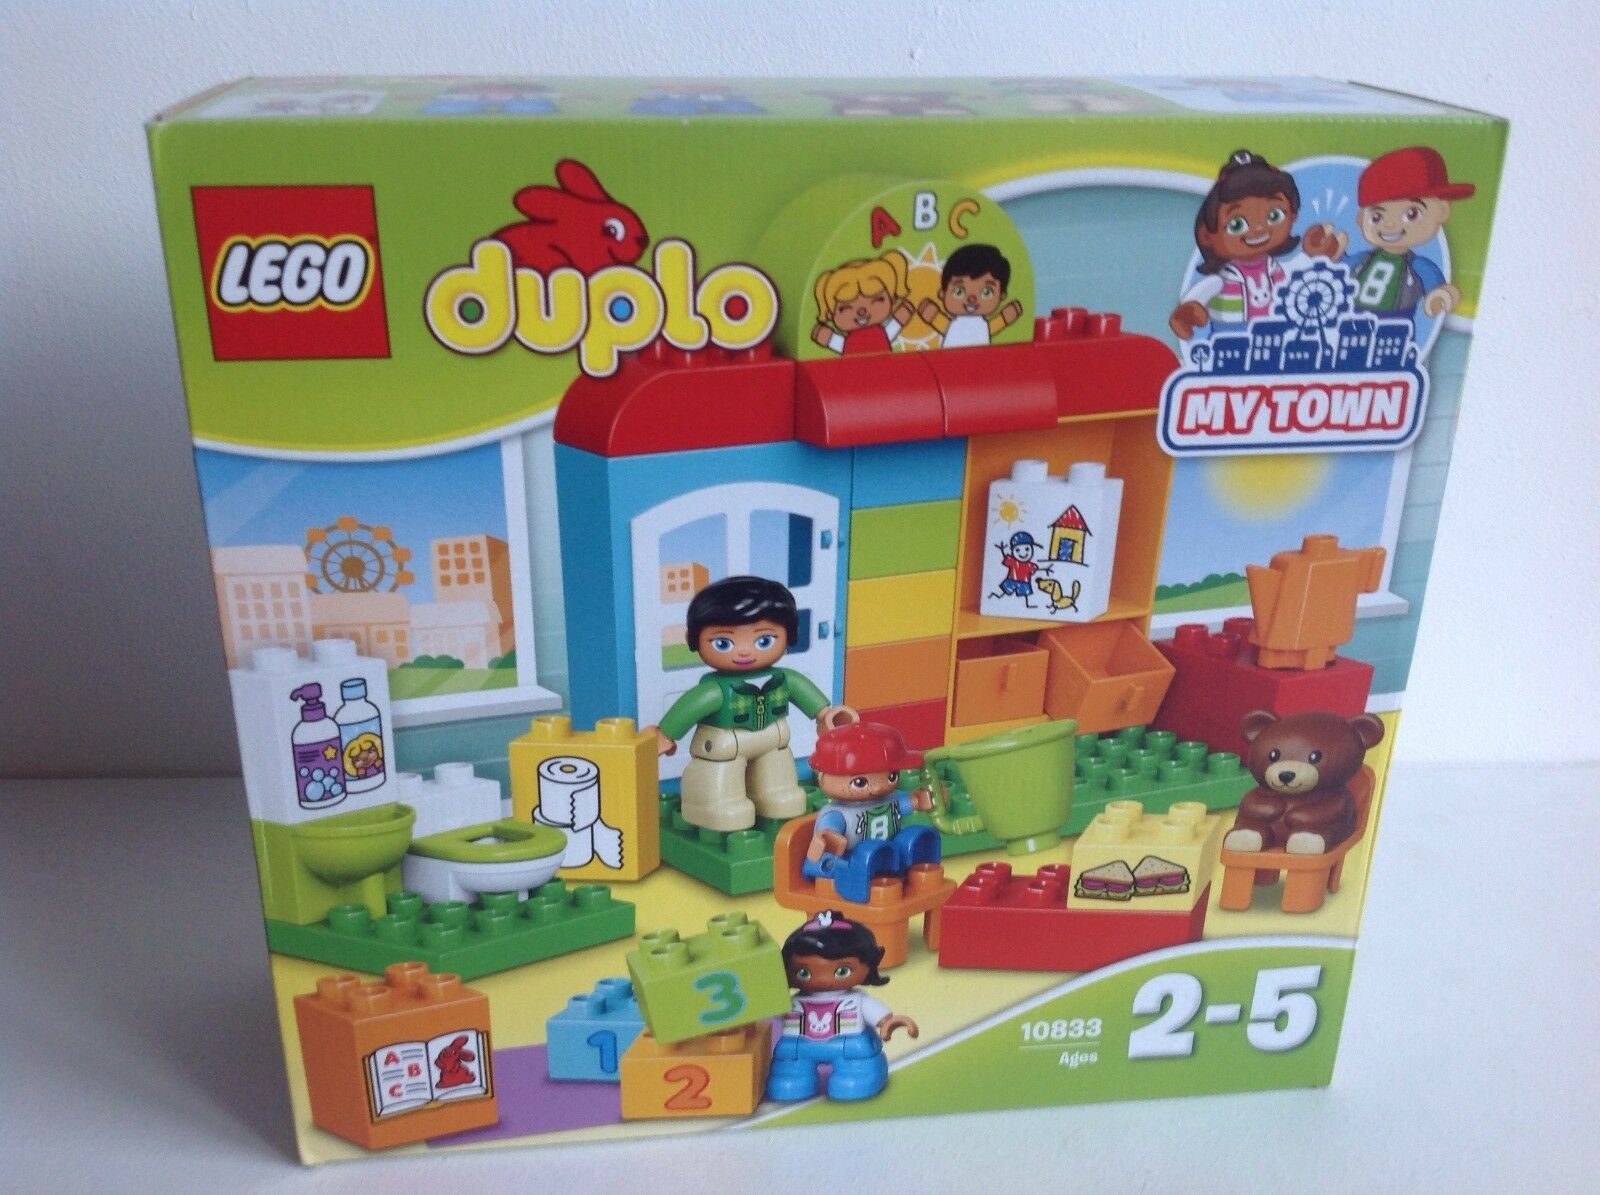 NEW LEGO DUPLO Nursery School Set 10833 My Town with 3 Duplo Figures New Boxed